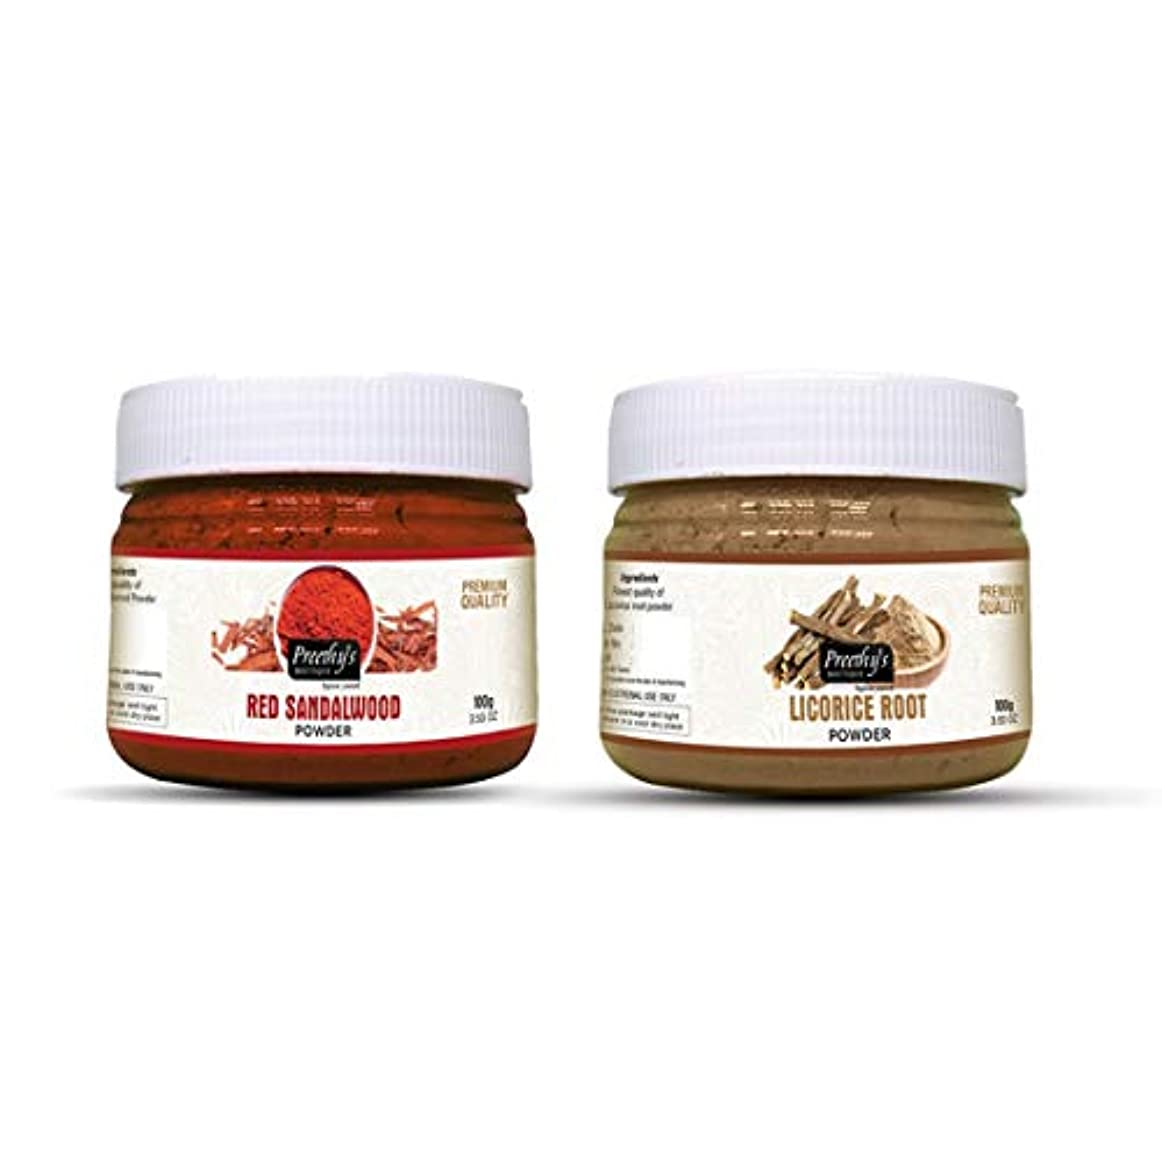 Combo offer Of Licorice root powder 100gm & Red sandalwood powder 100gm - Natural Remedies for Skin Disorders,...